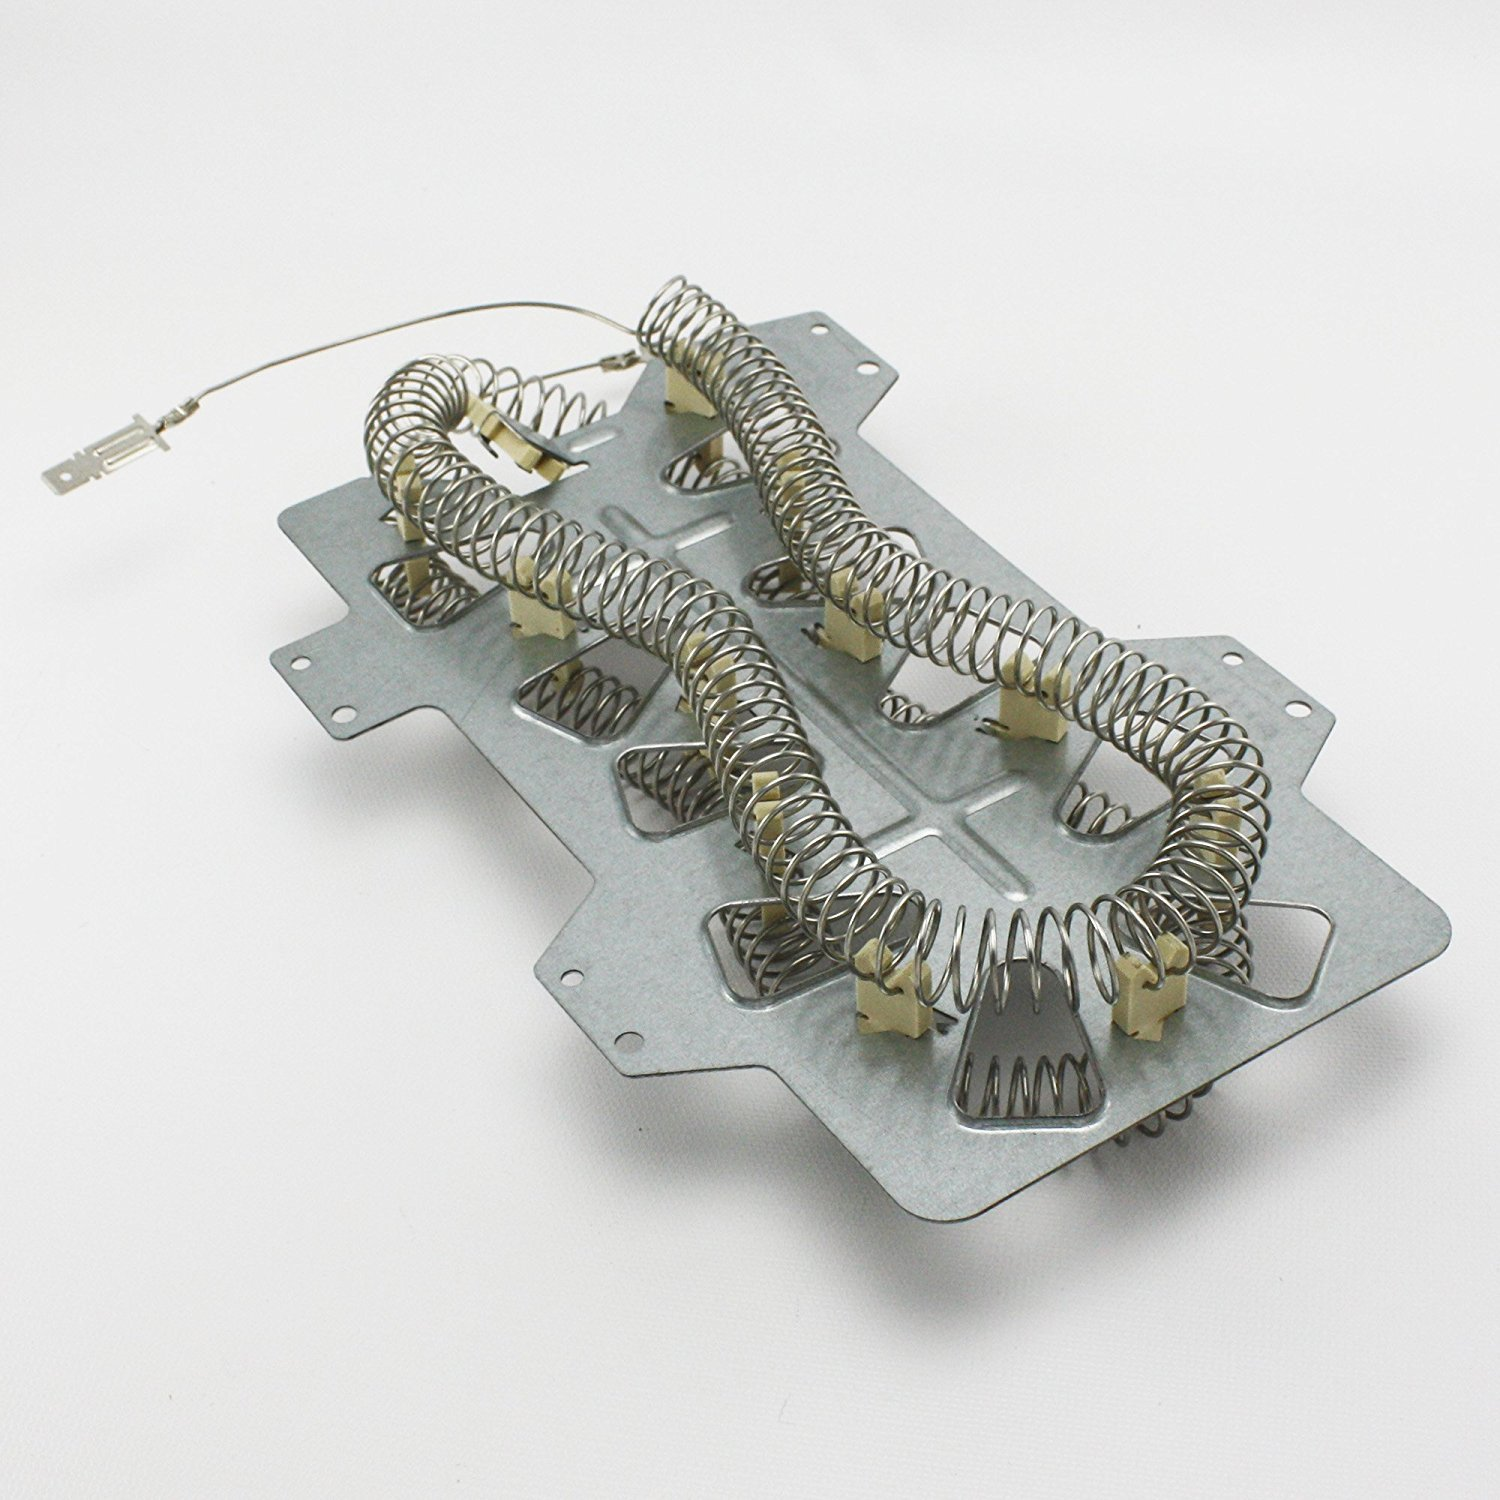 Maytag Dryer Replacement Heating Element 35001247 Home Electric Model Mde9606ayw Improvement